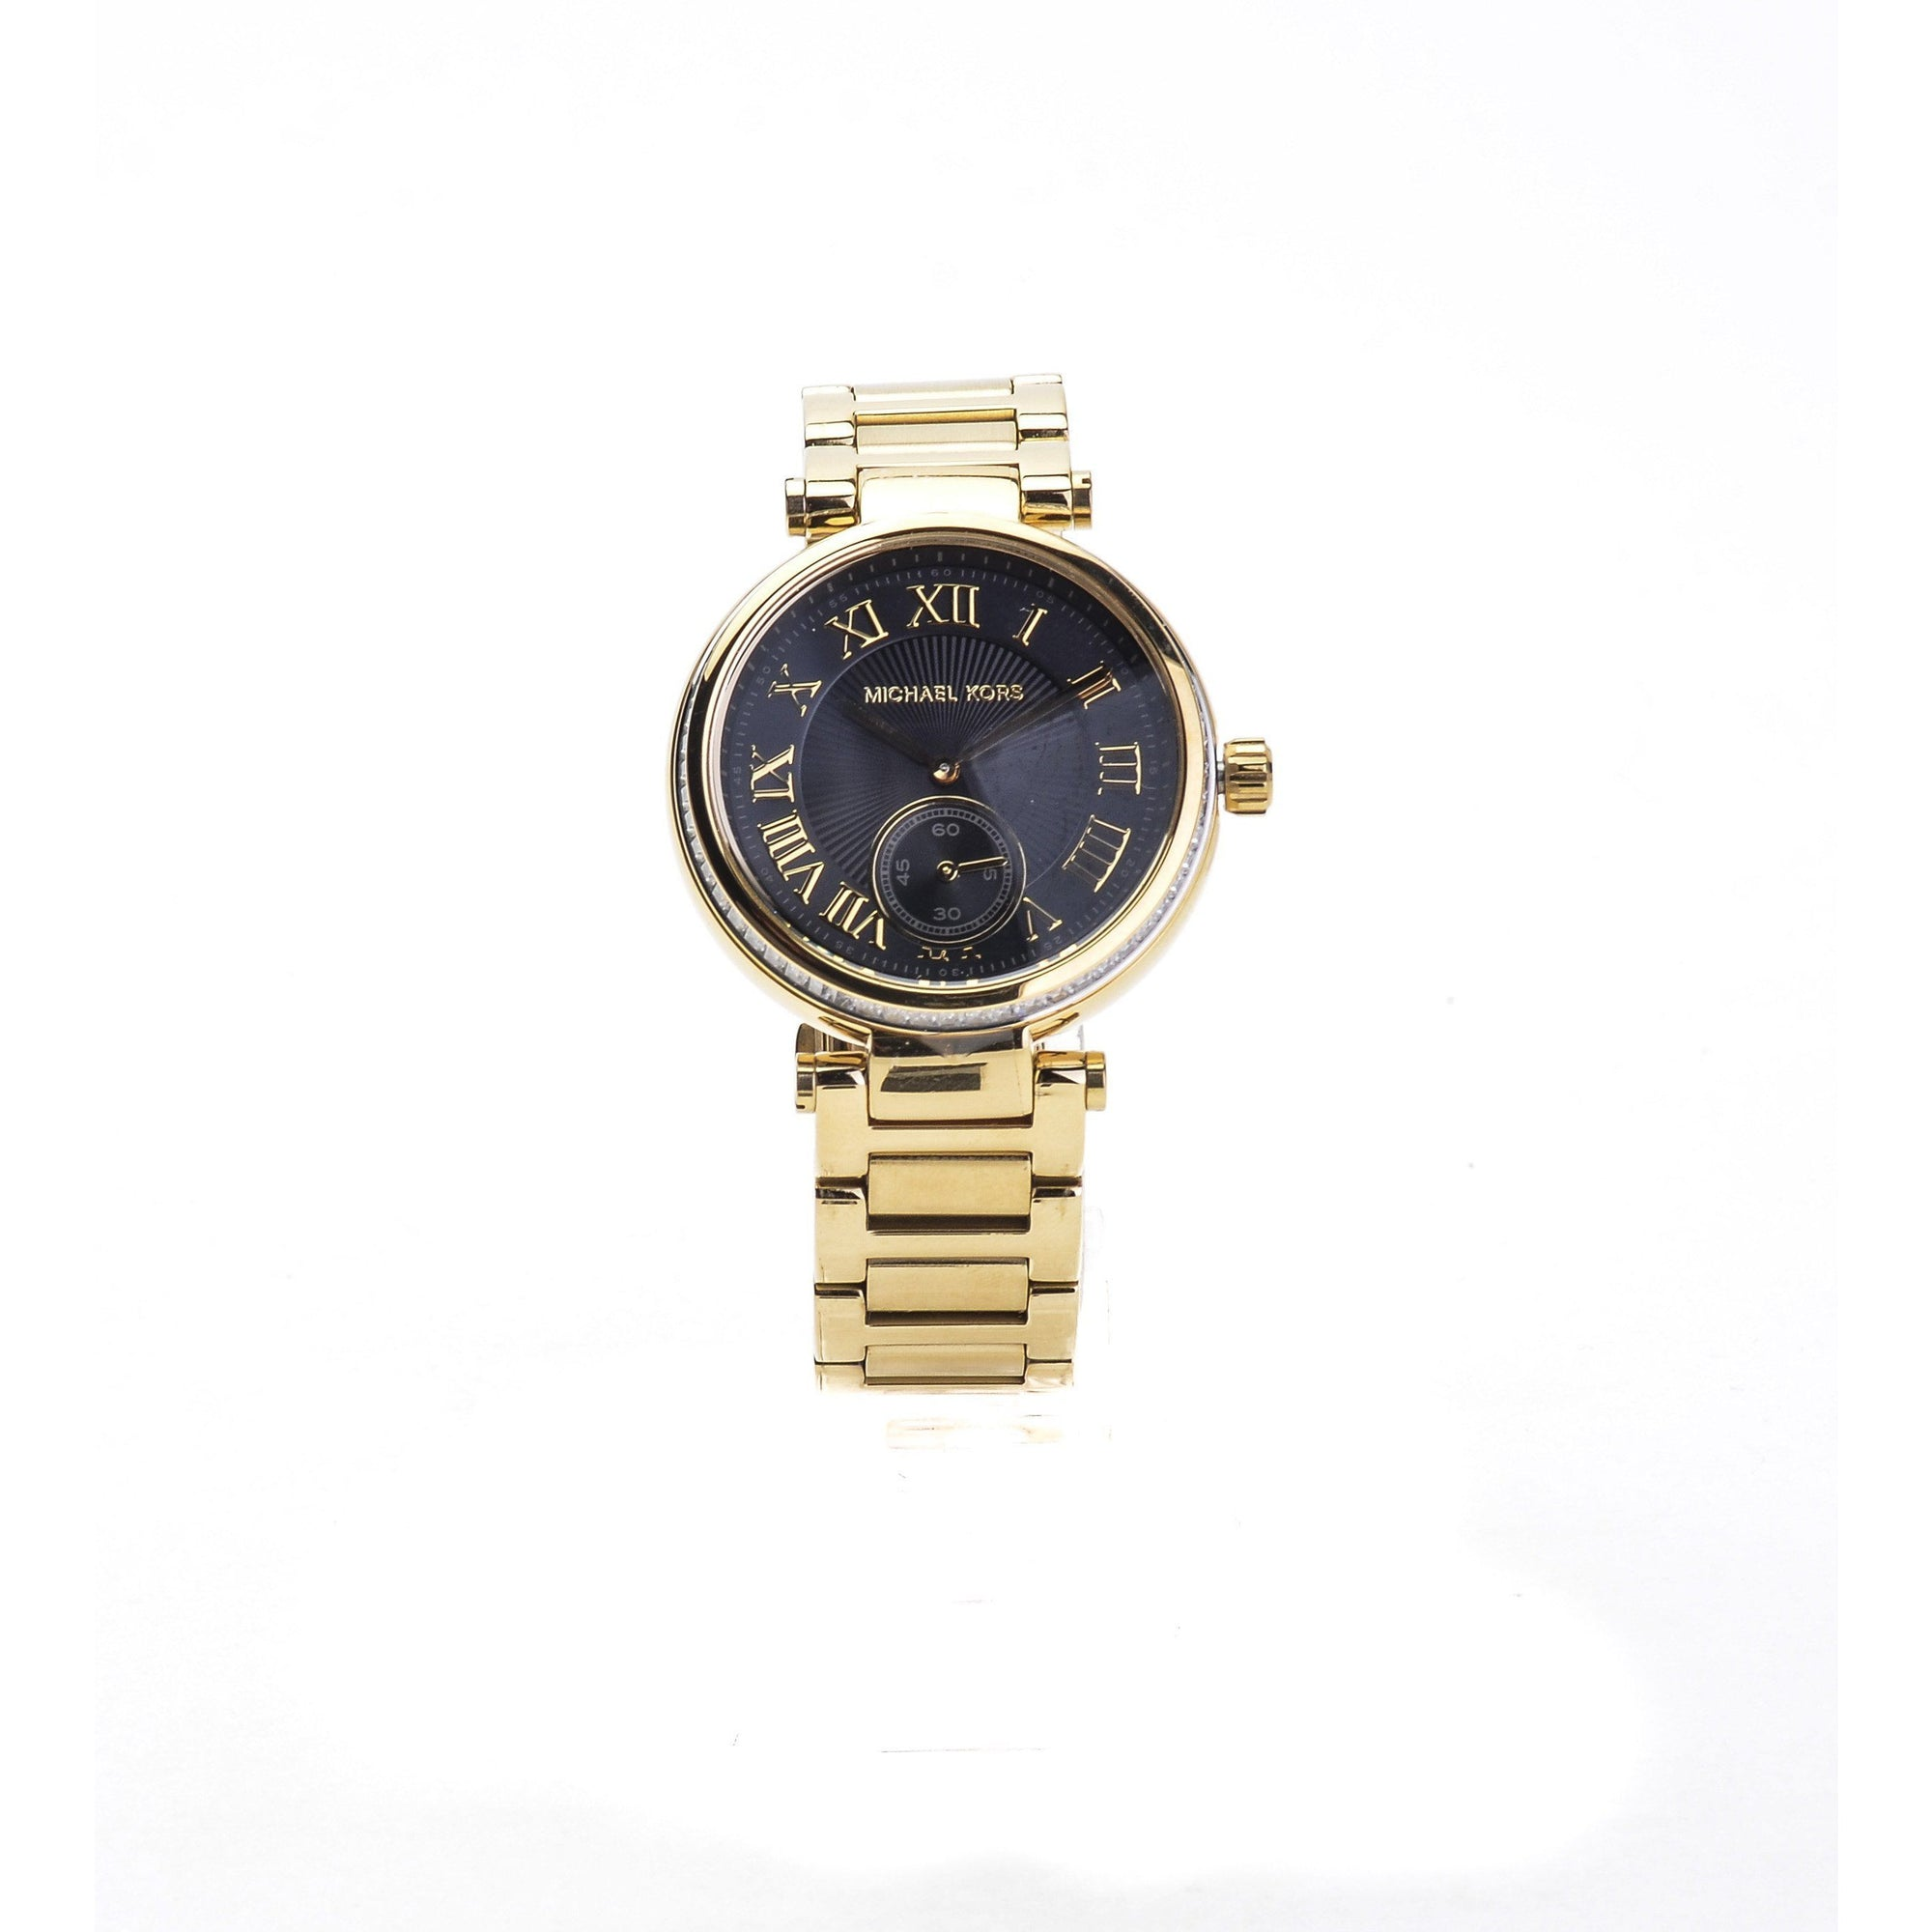 Michael Kors Mk5989 WATCH Michael Kors